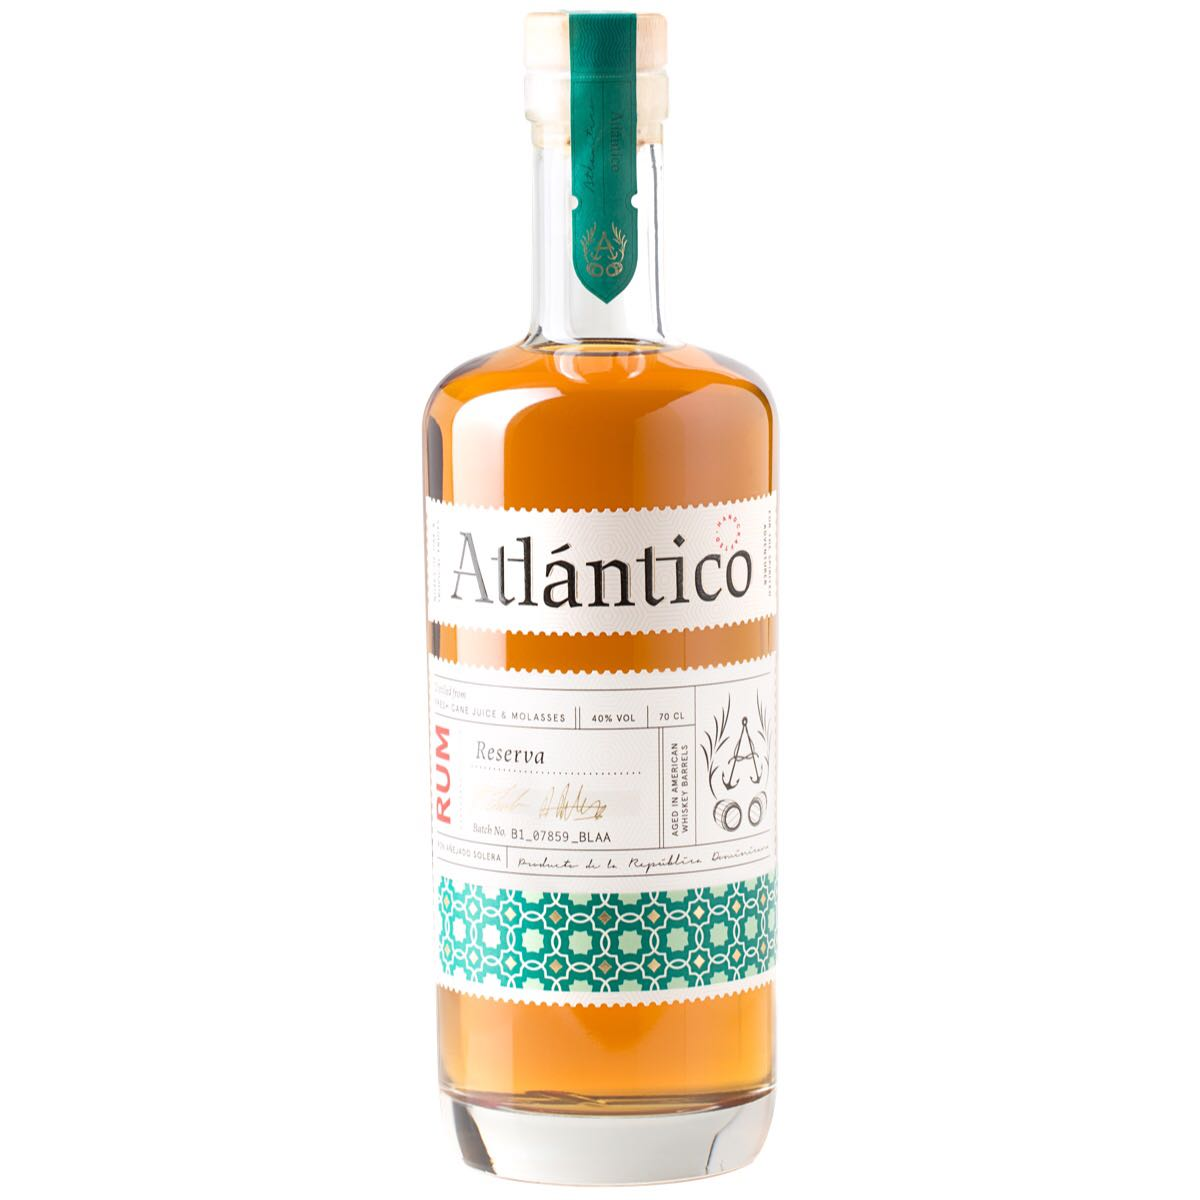 Bottle image of Atlantico Reserva